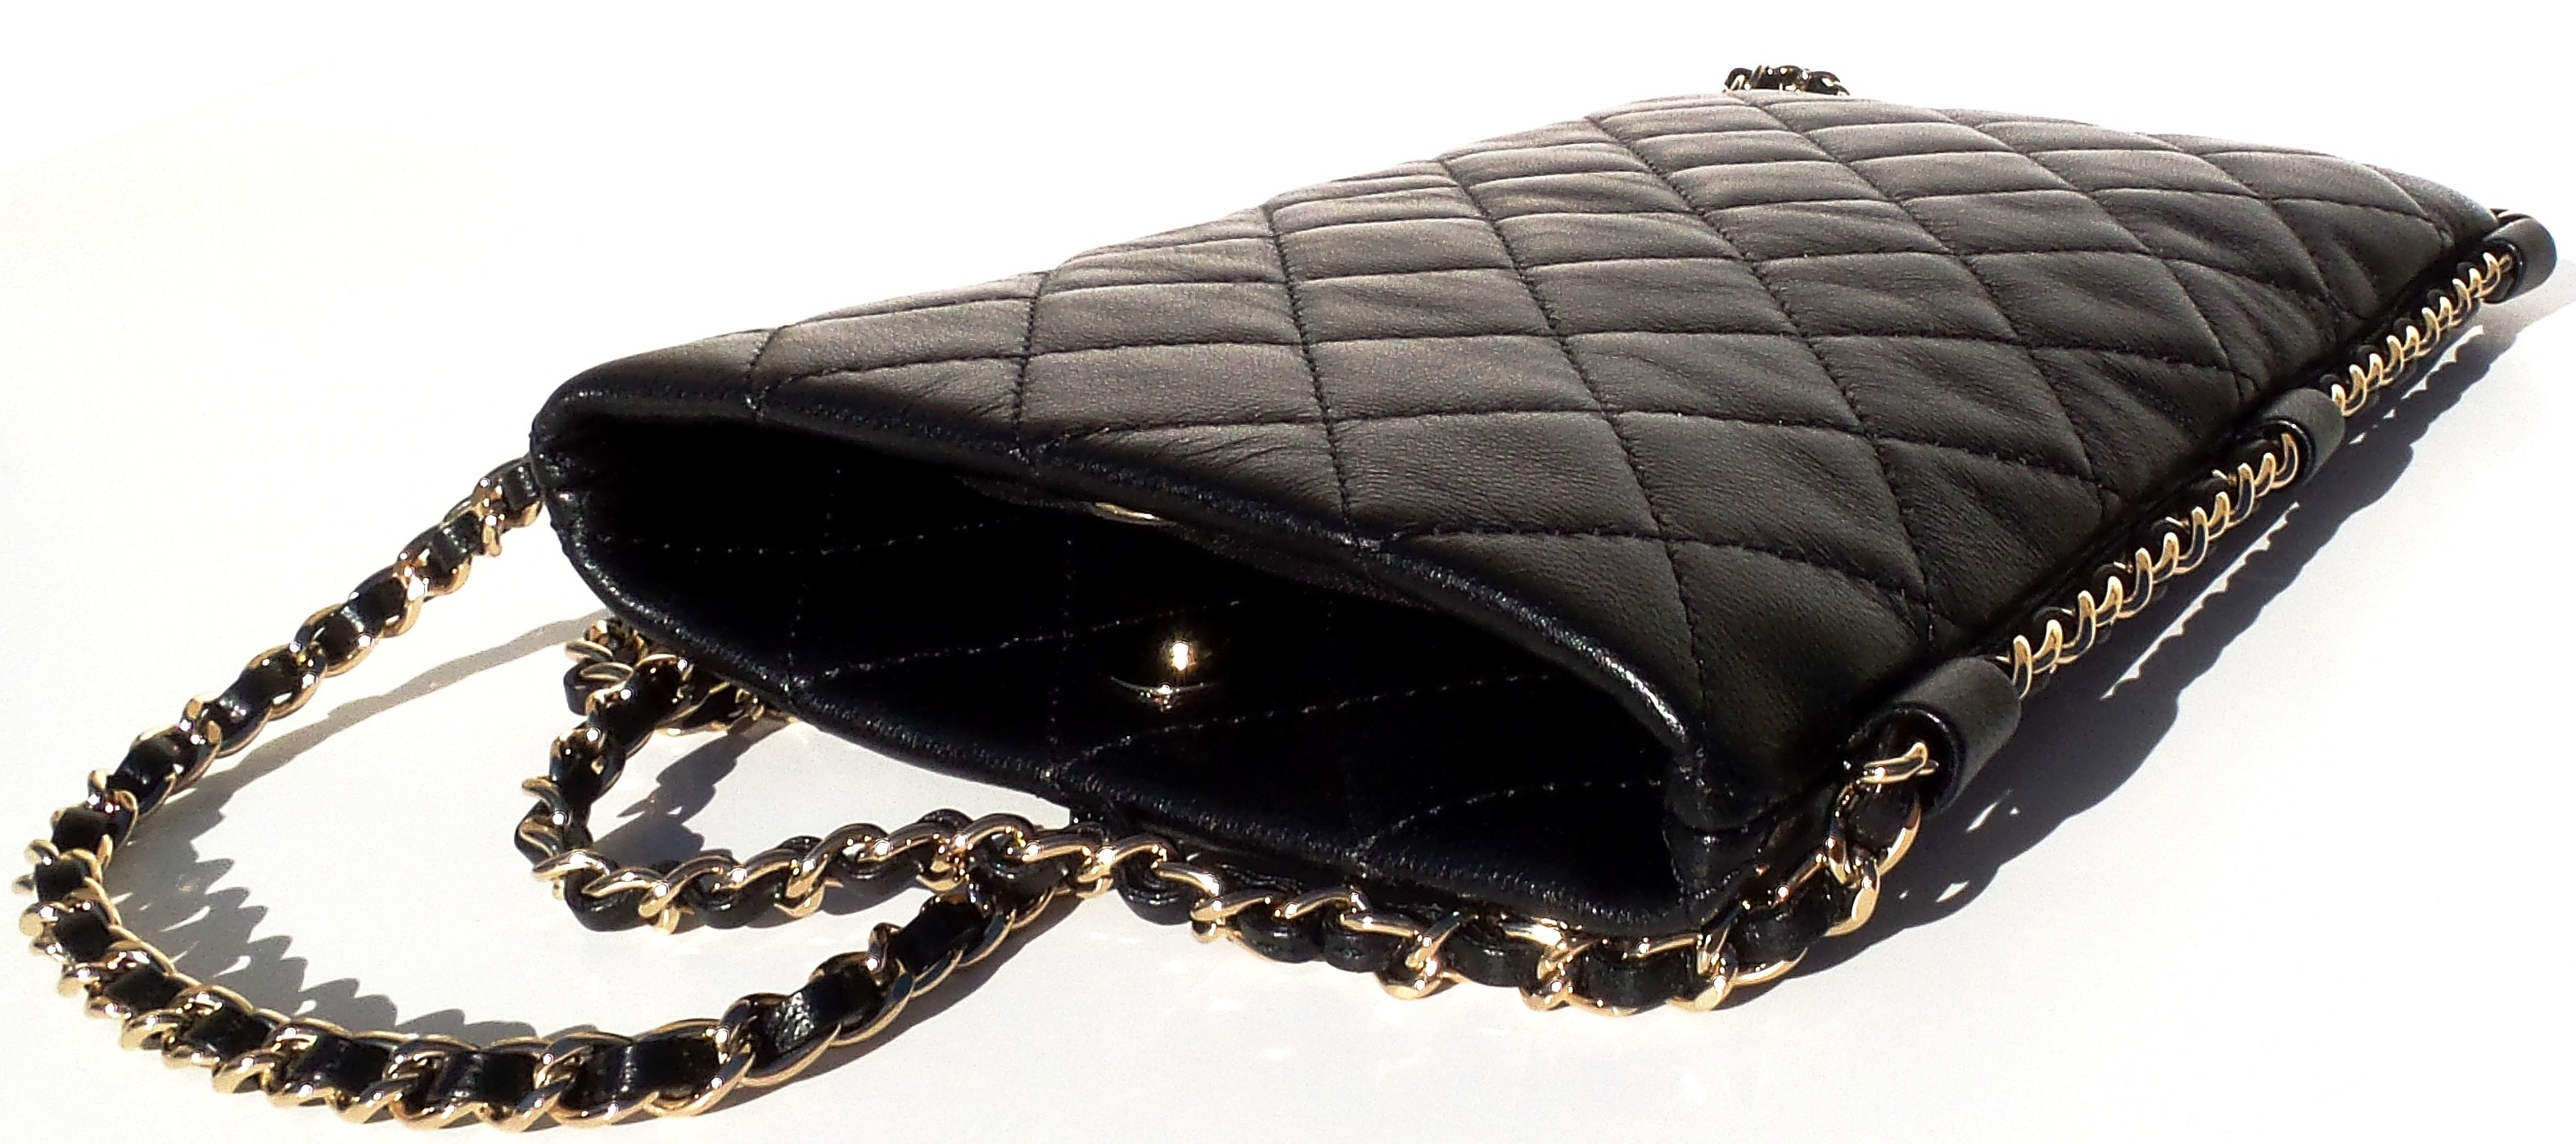 'Sold' CHANEL 18C Black Quilted Leather Clutch w Chain Around Crossbody Bag Phone Pouch